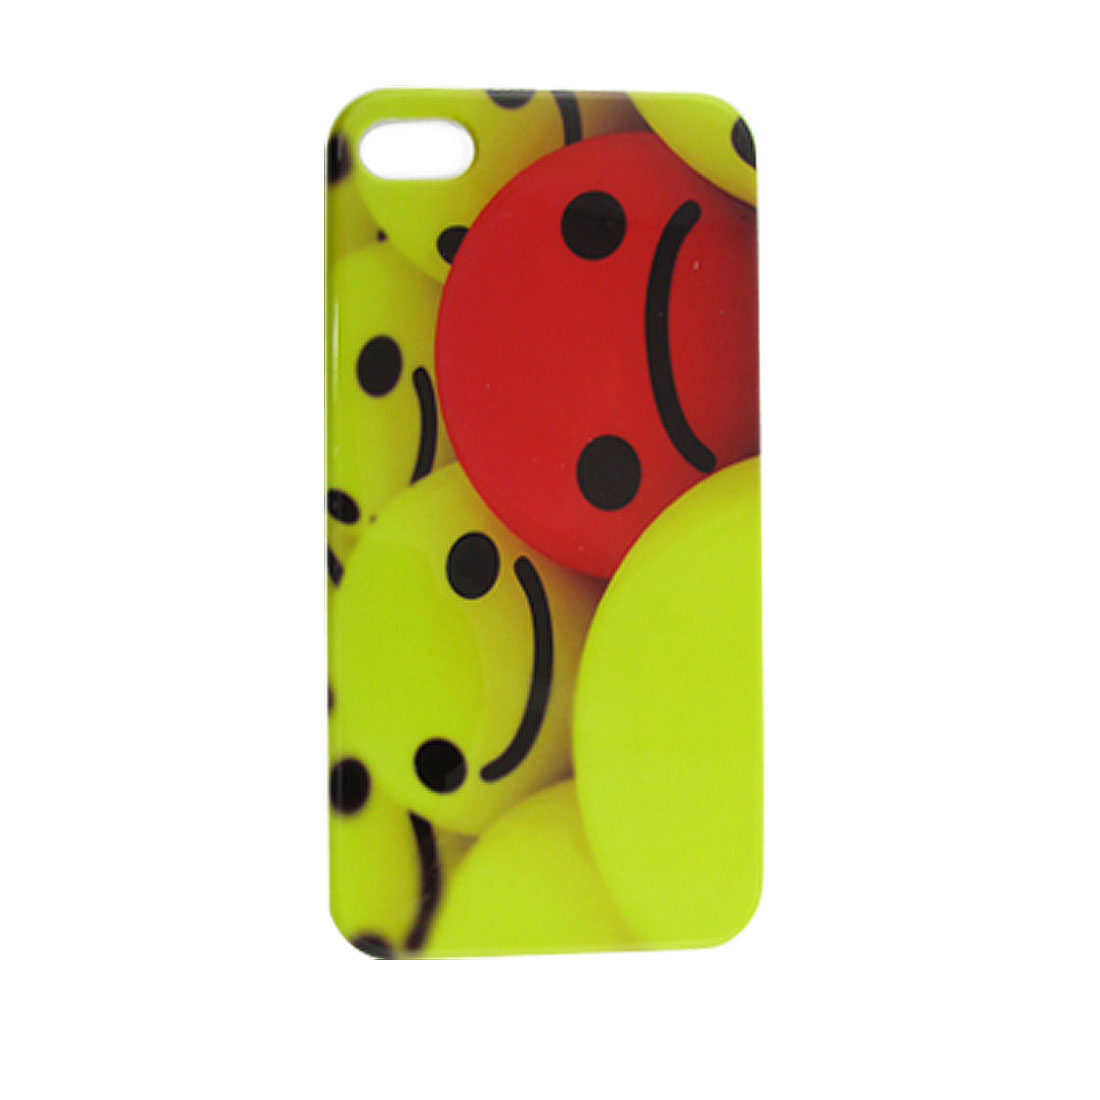 Hard IMD Plastic Green Smile Red Sad Faces Printed Back Cover for iPhone 4 4G 4S 4GS 4S